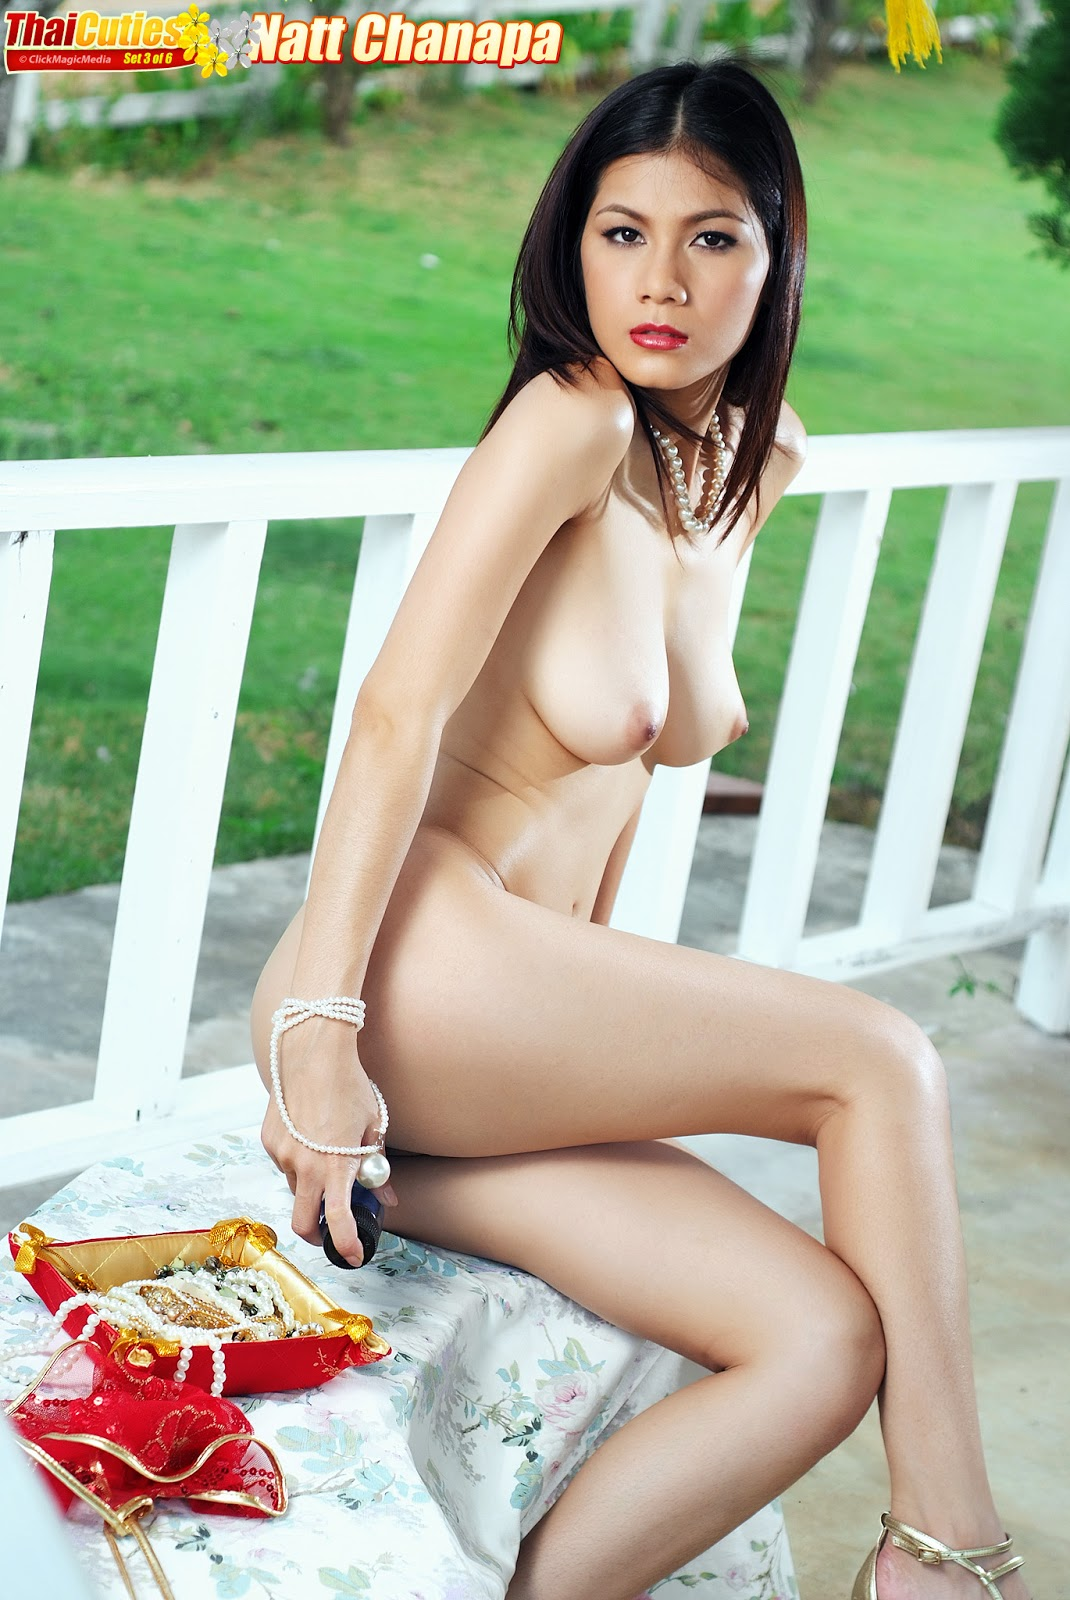 thaicuties natt chanapa 03 tbaxgirl xxx asian sexy girls